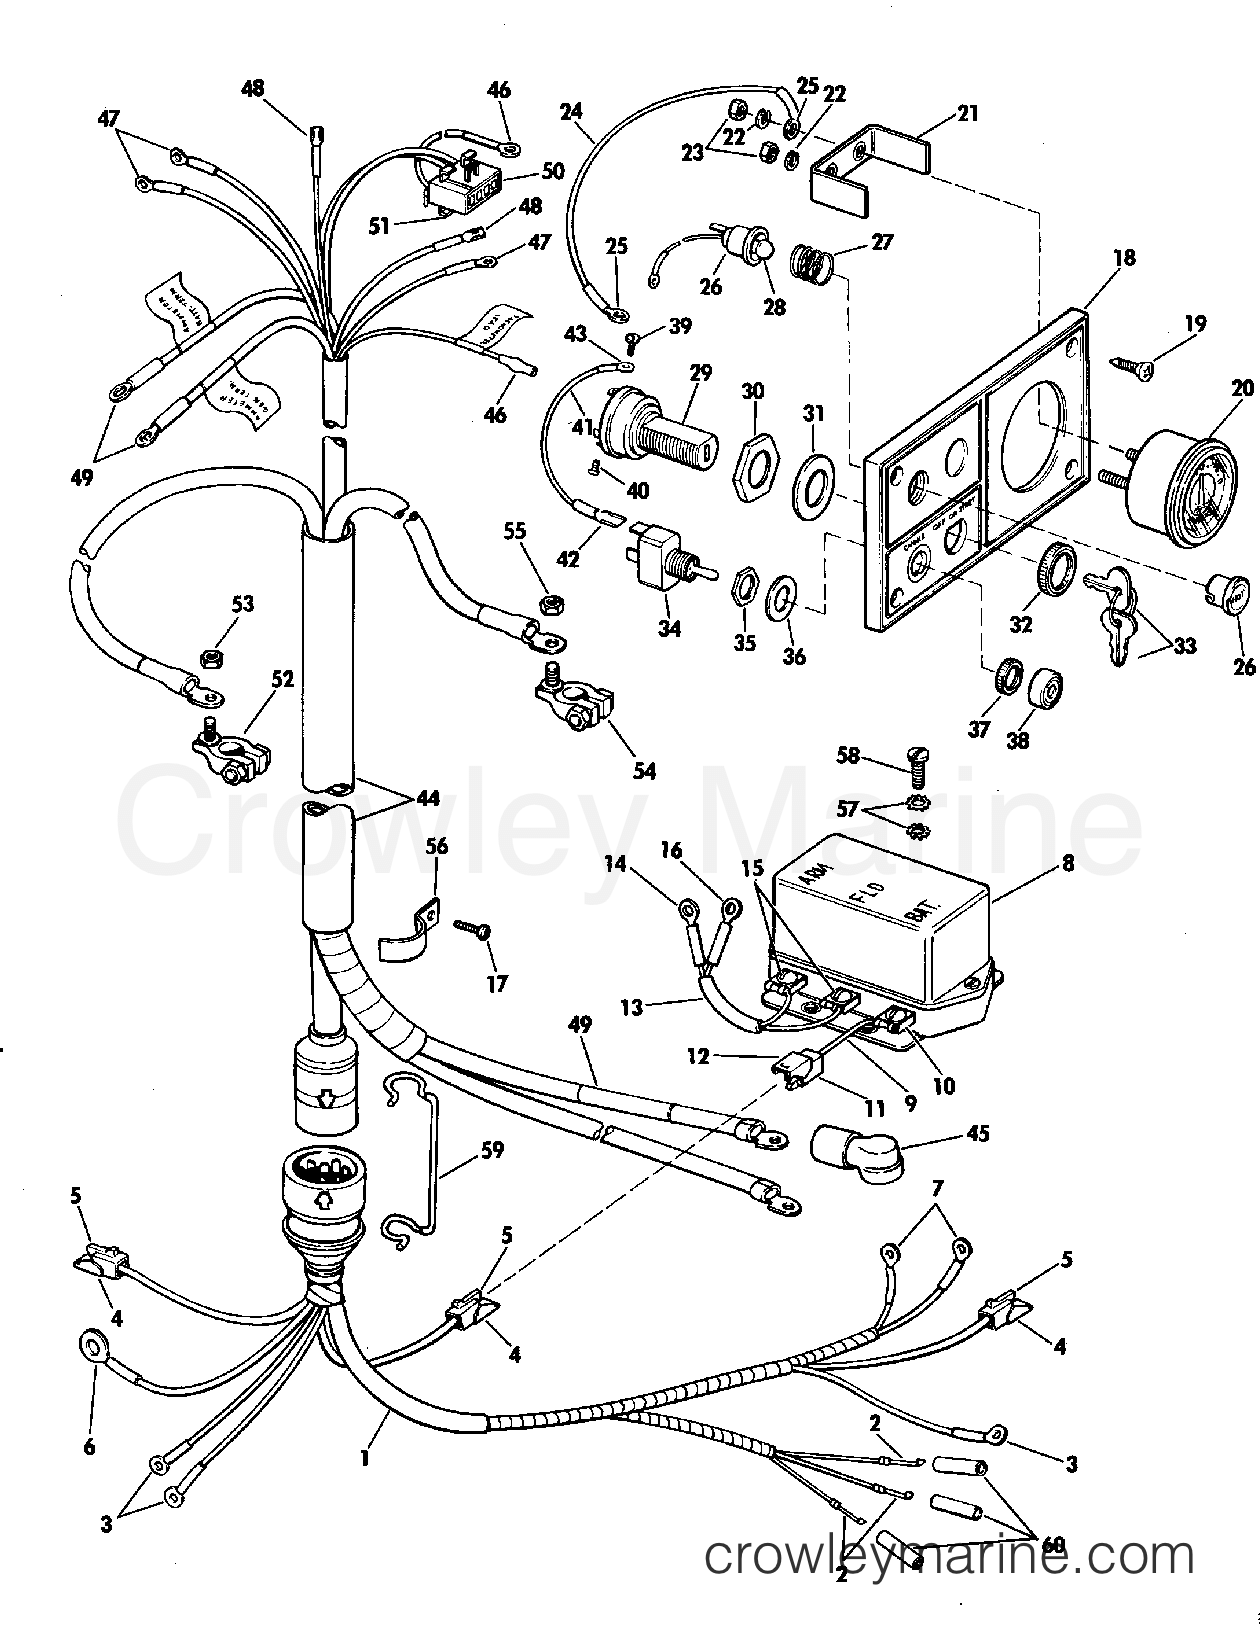 Instruments And Cable Group Electric Shift